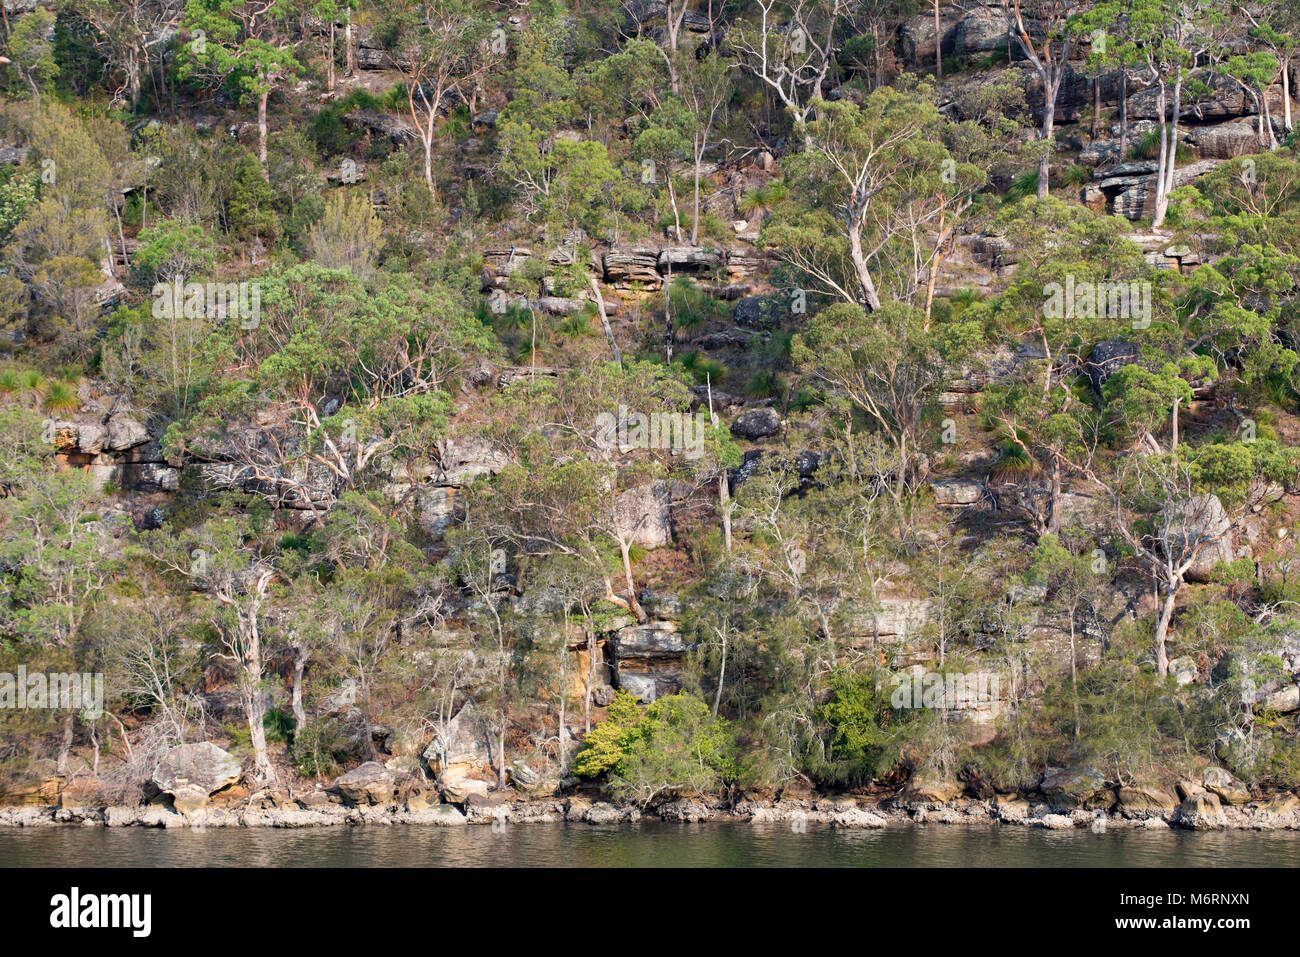 Eucalyptus (Gum) trees cover a hillside in Kuring-gai national park near Bobbin Head to the north of Sydney NSW, - Stock Image